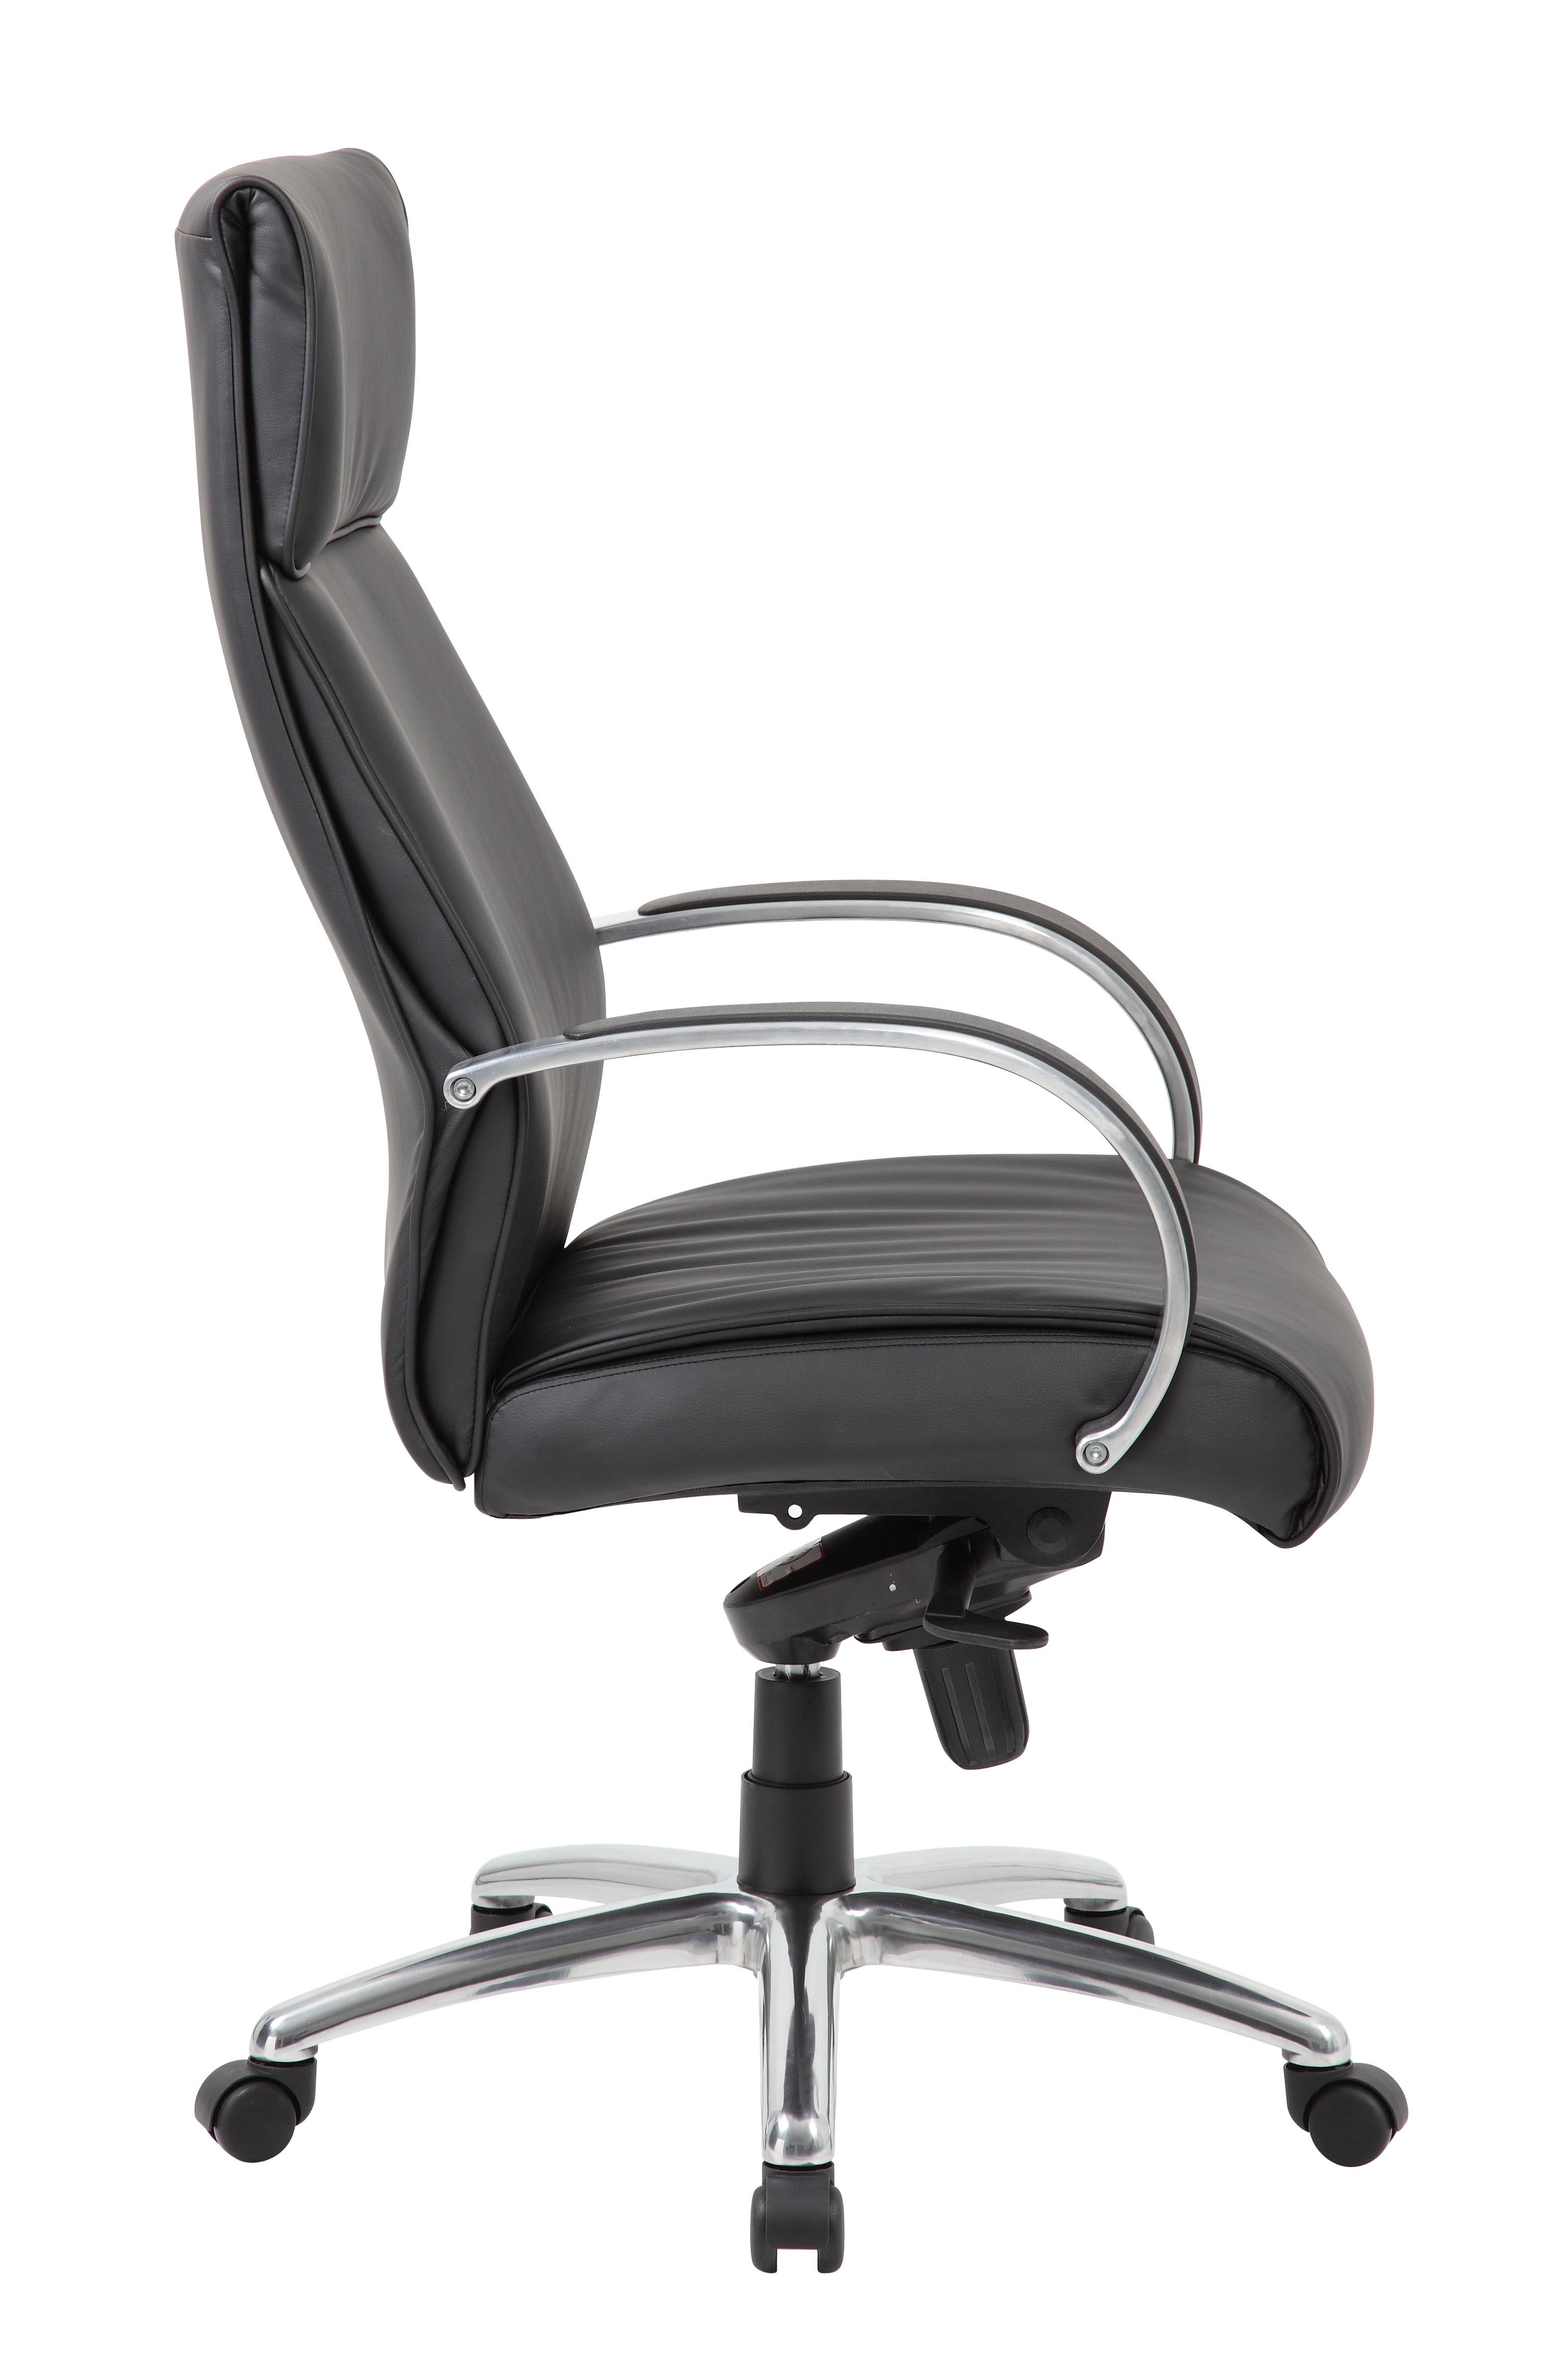 desk chair knees small gaming boss high back black upholstery executive with knee